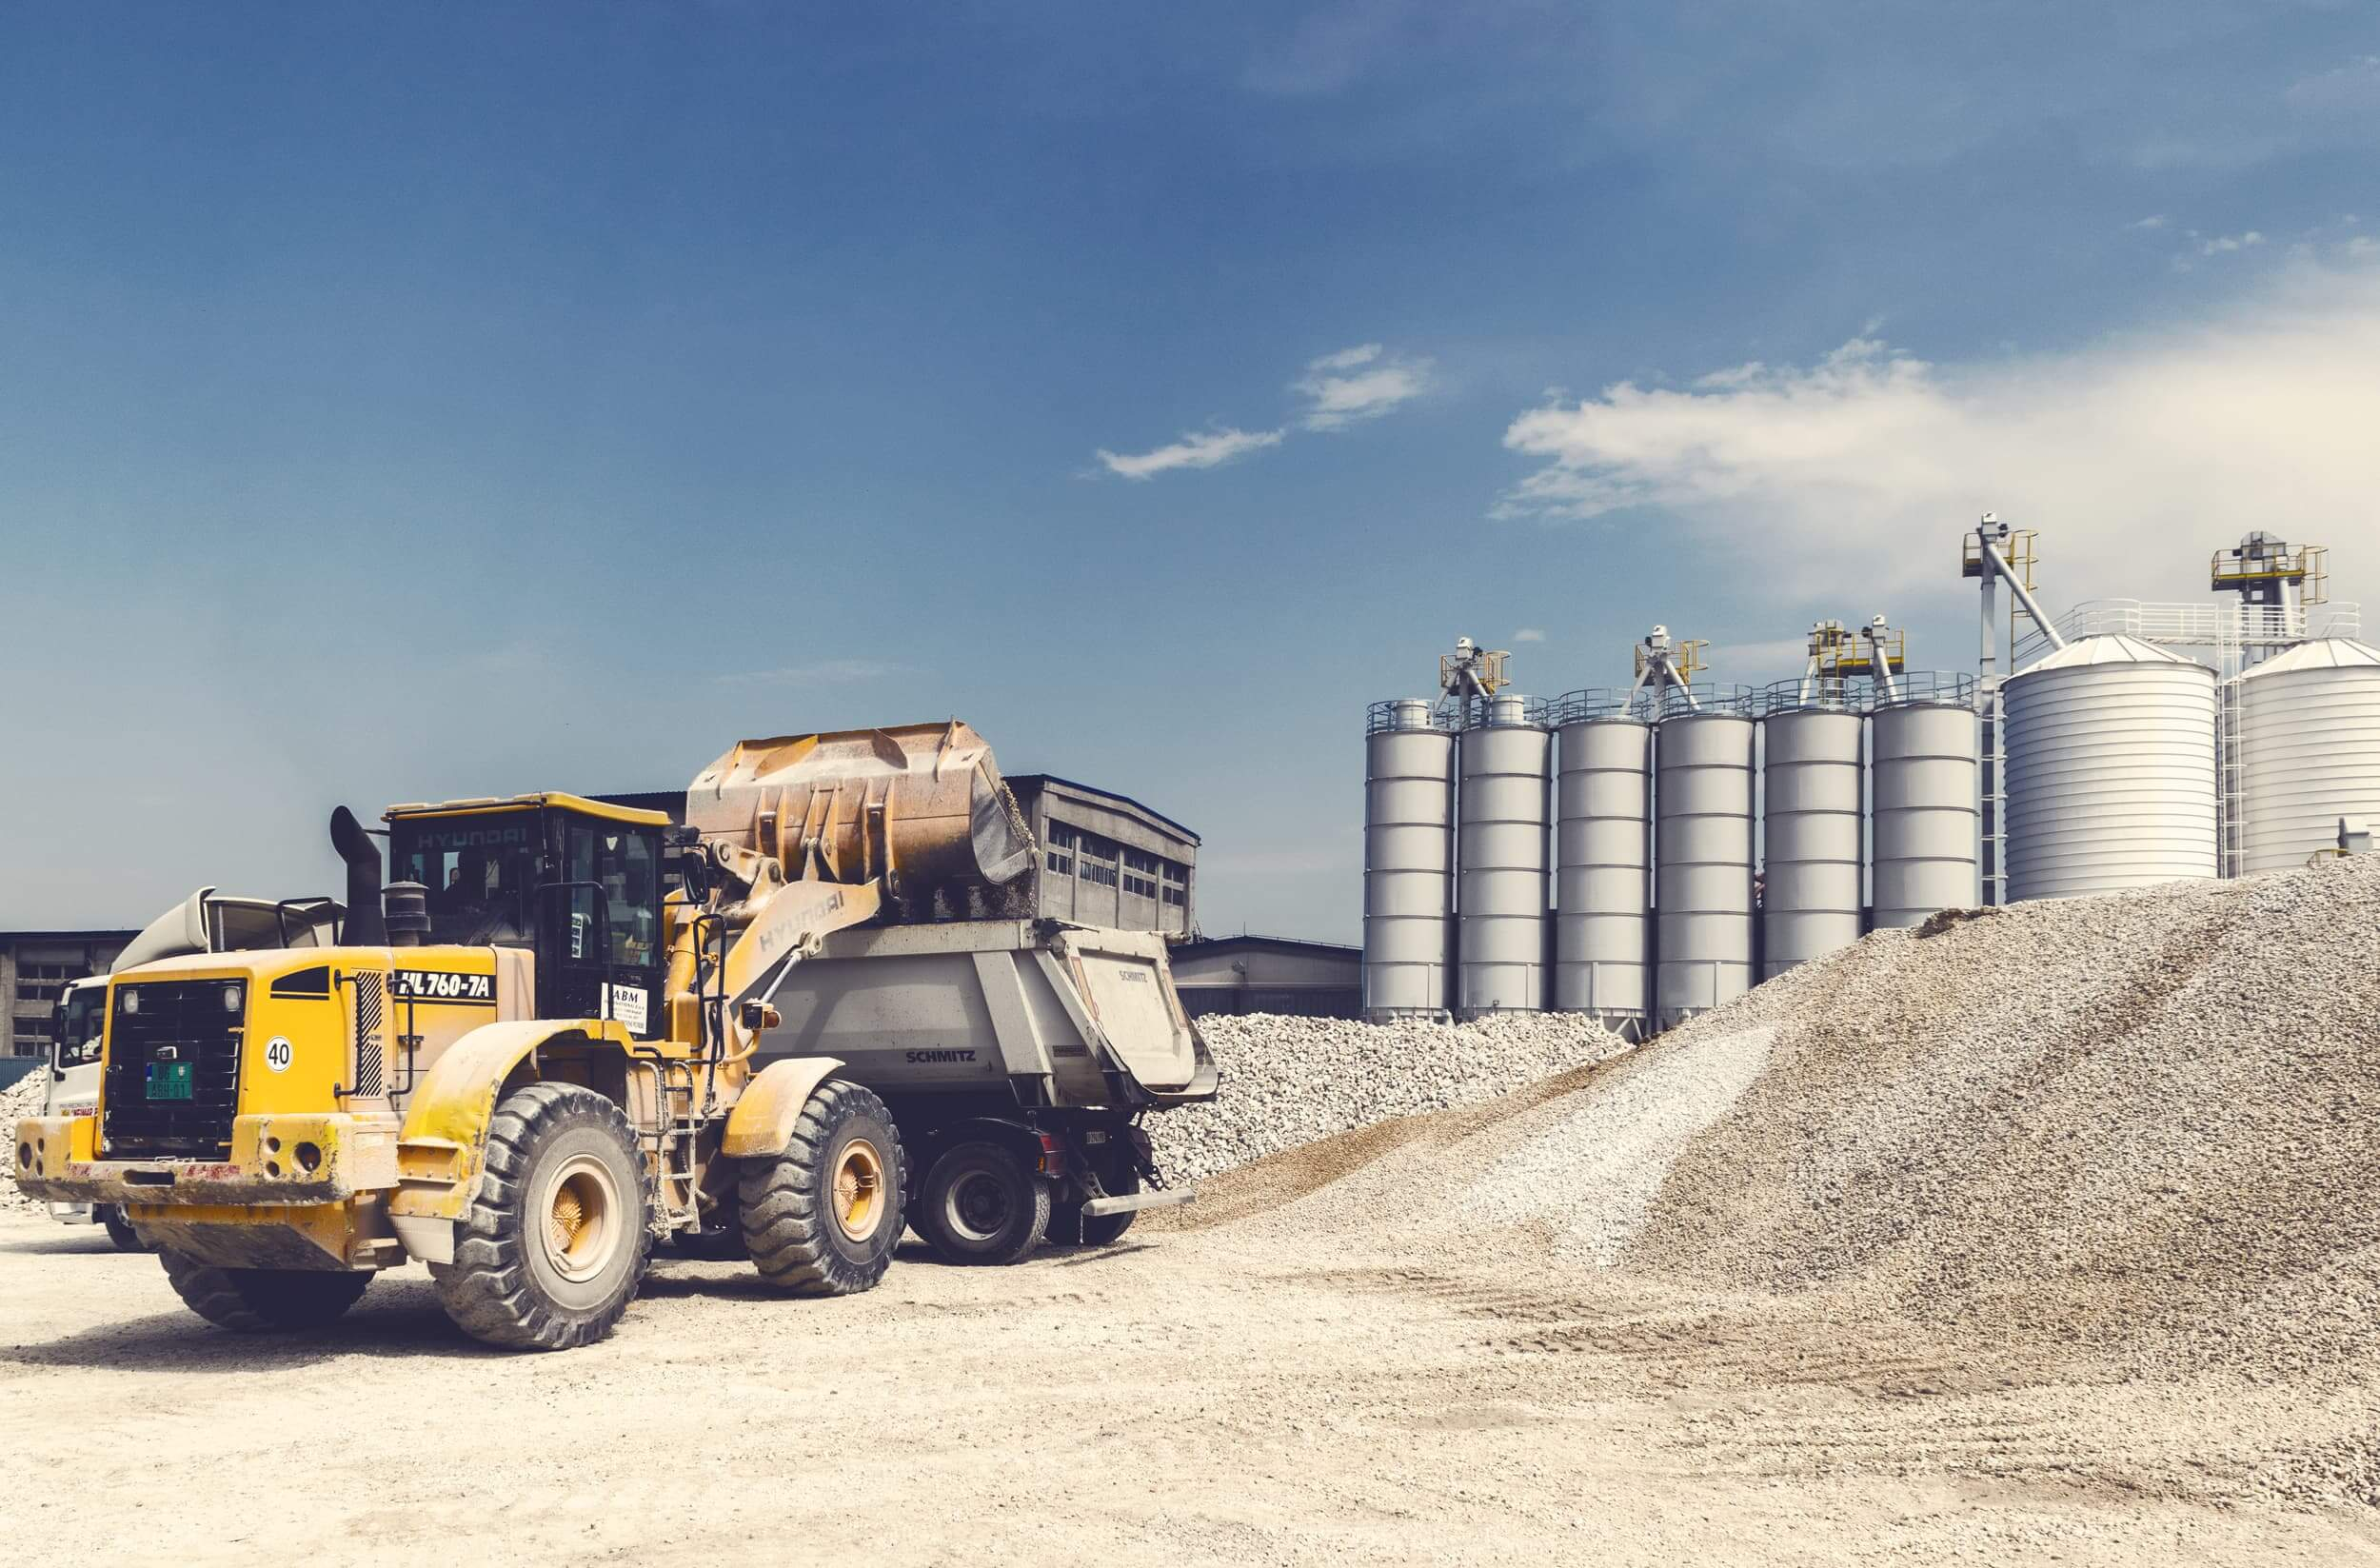 Photo of a dump truck being loaded in a gravel pit